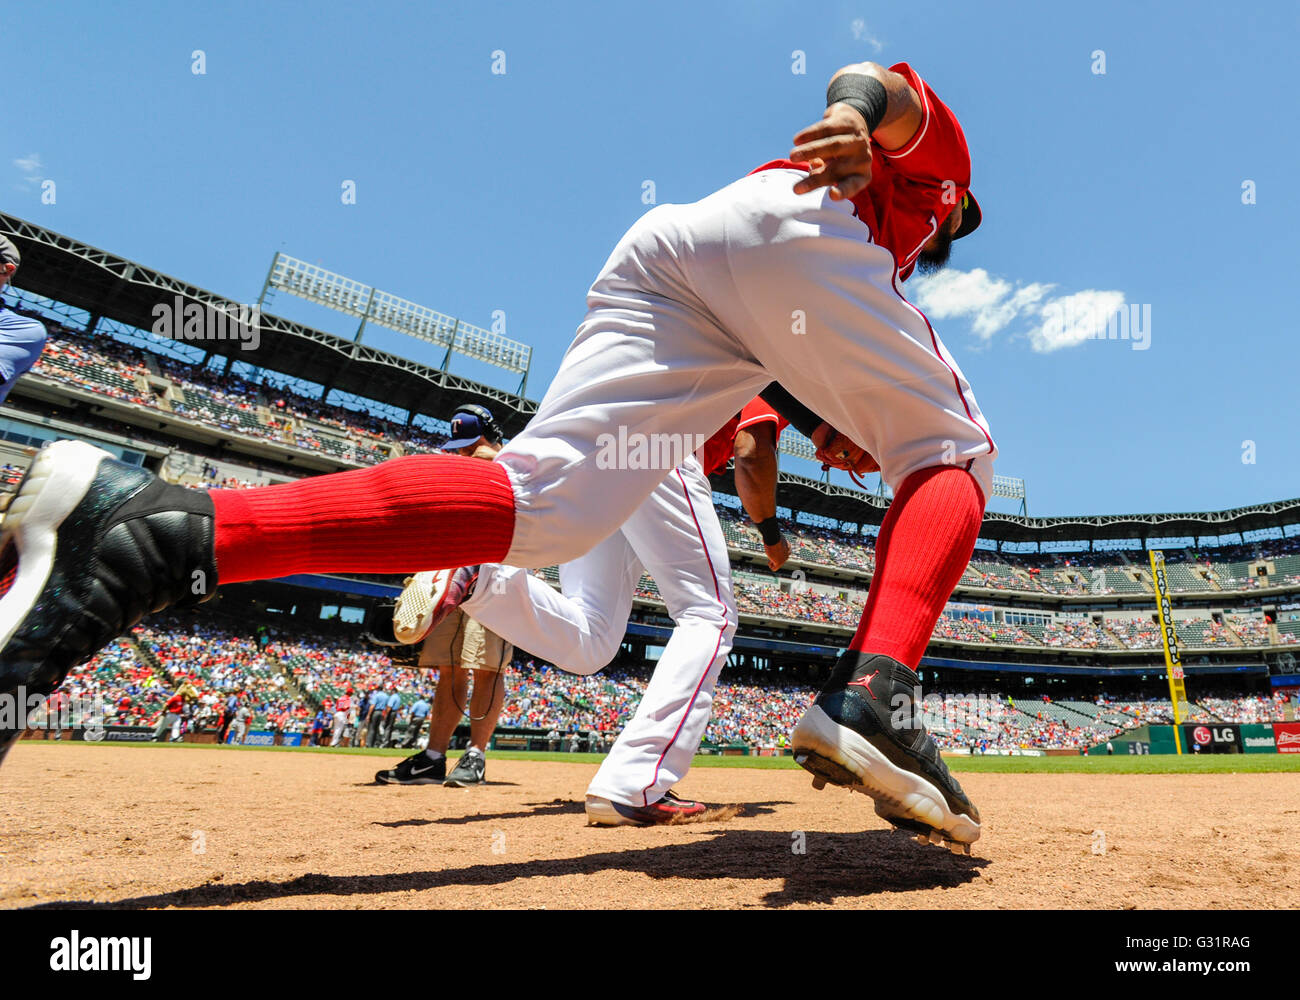 5 juin 2016 : _______ au cours d'un match entre la MLB Mariners de Seattle et les Texas Rangers à Photo Stock